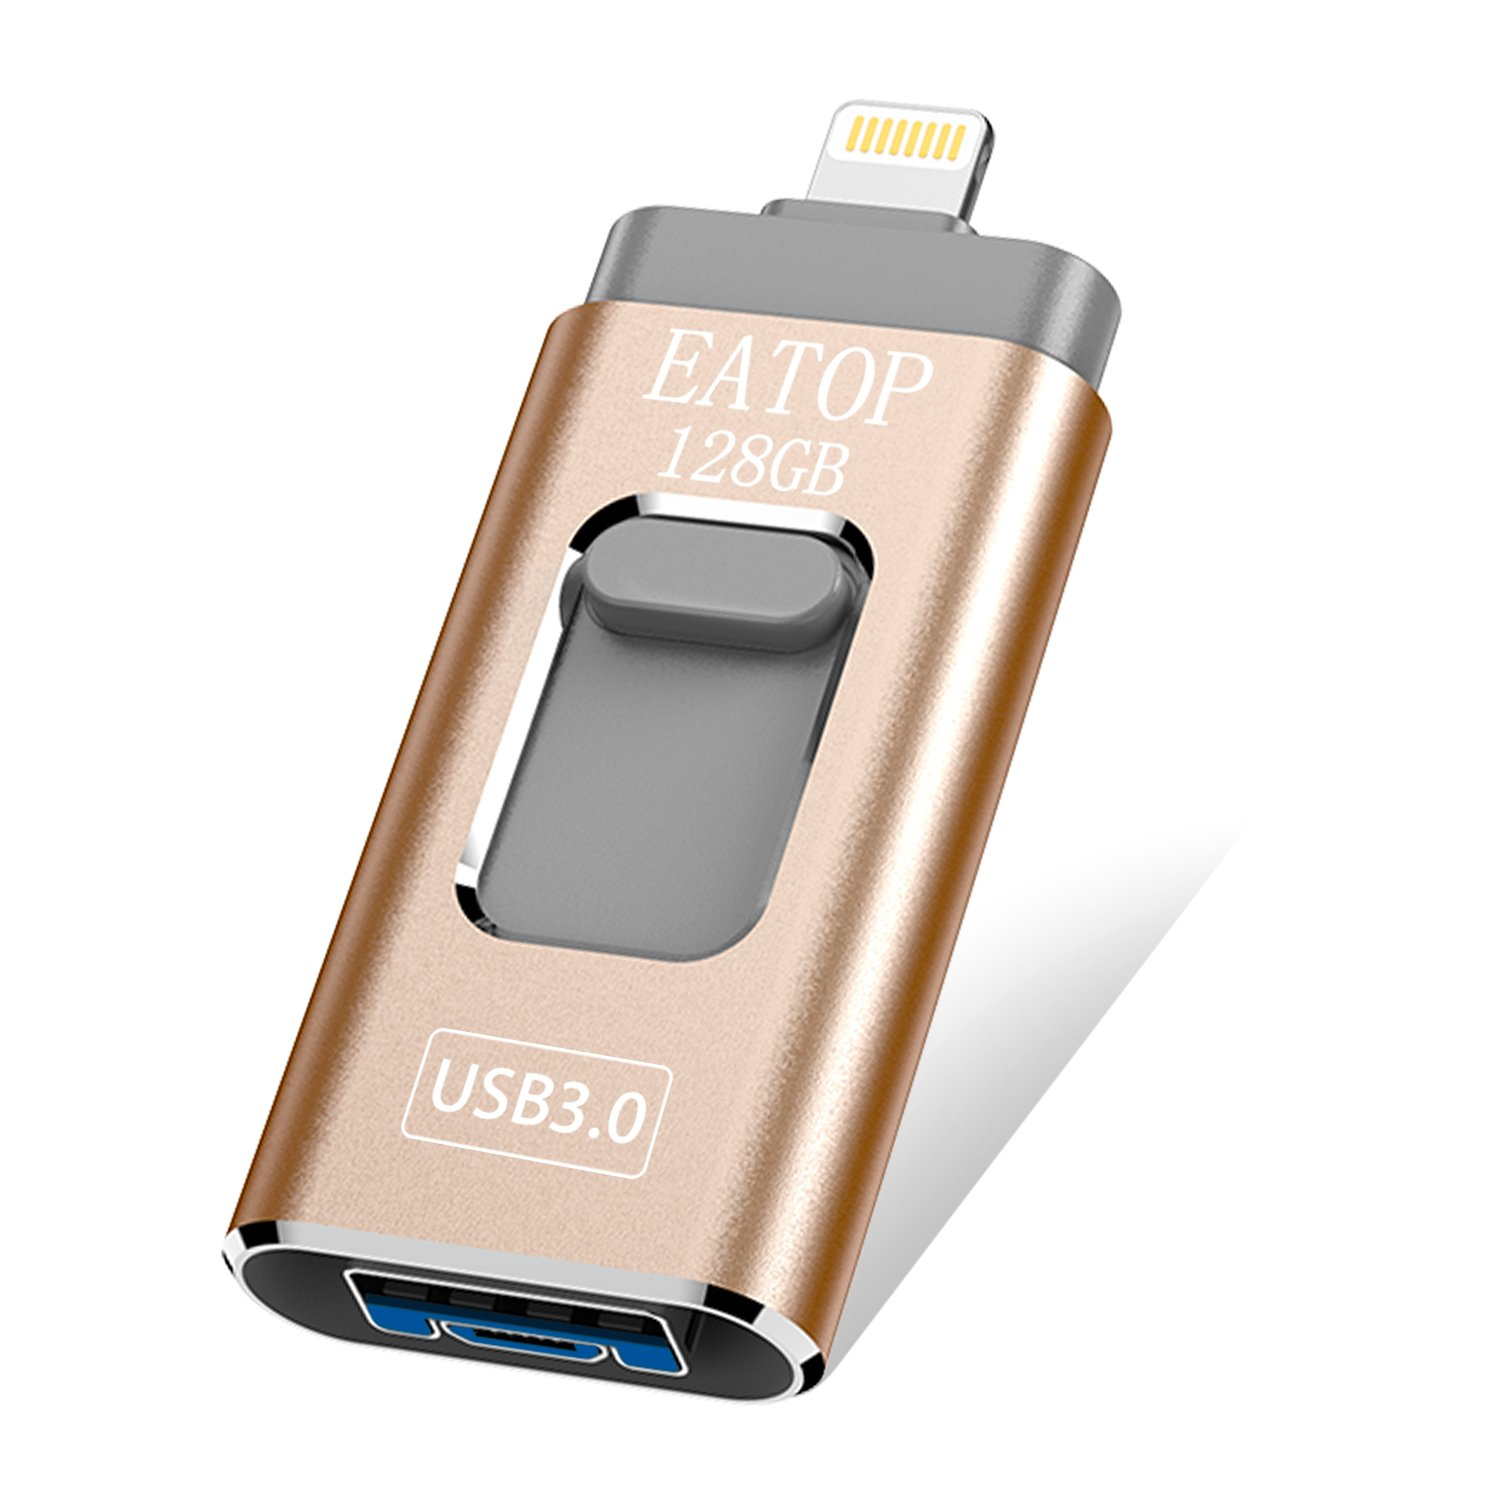 iOS Flash Drive 128GB iPhone Memory Stick, EATOP Thumb Drive USB 3.0 Lightning Memory Stick iPhone iPad Android Computers (Gold)